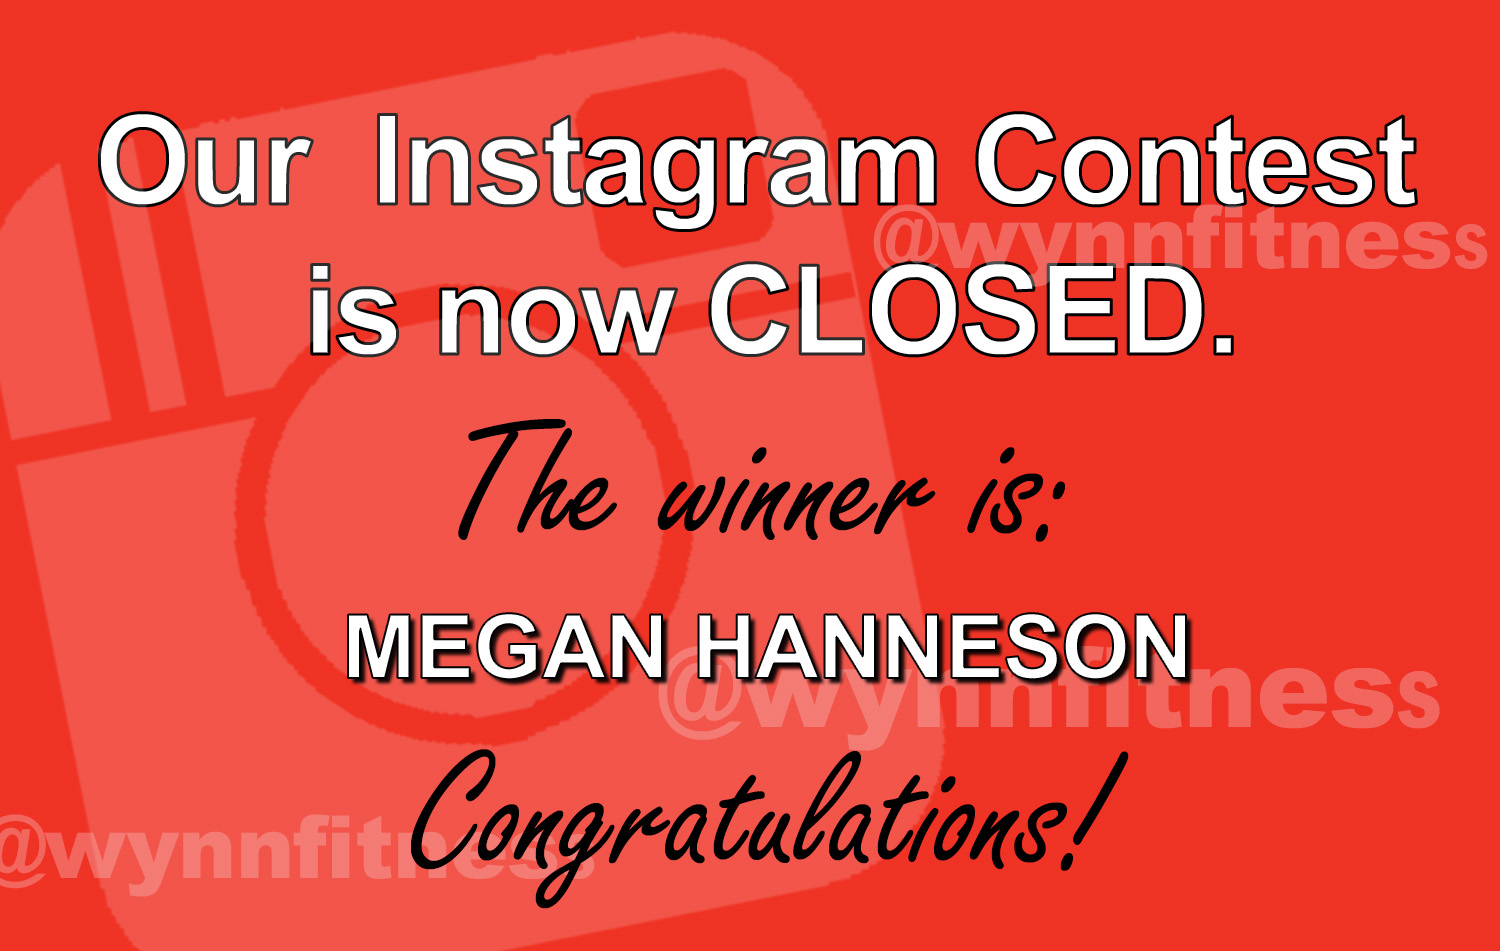 Instagram Contest is now closed and the winner is